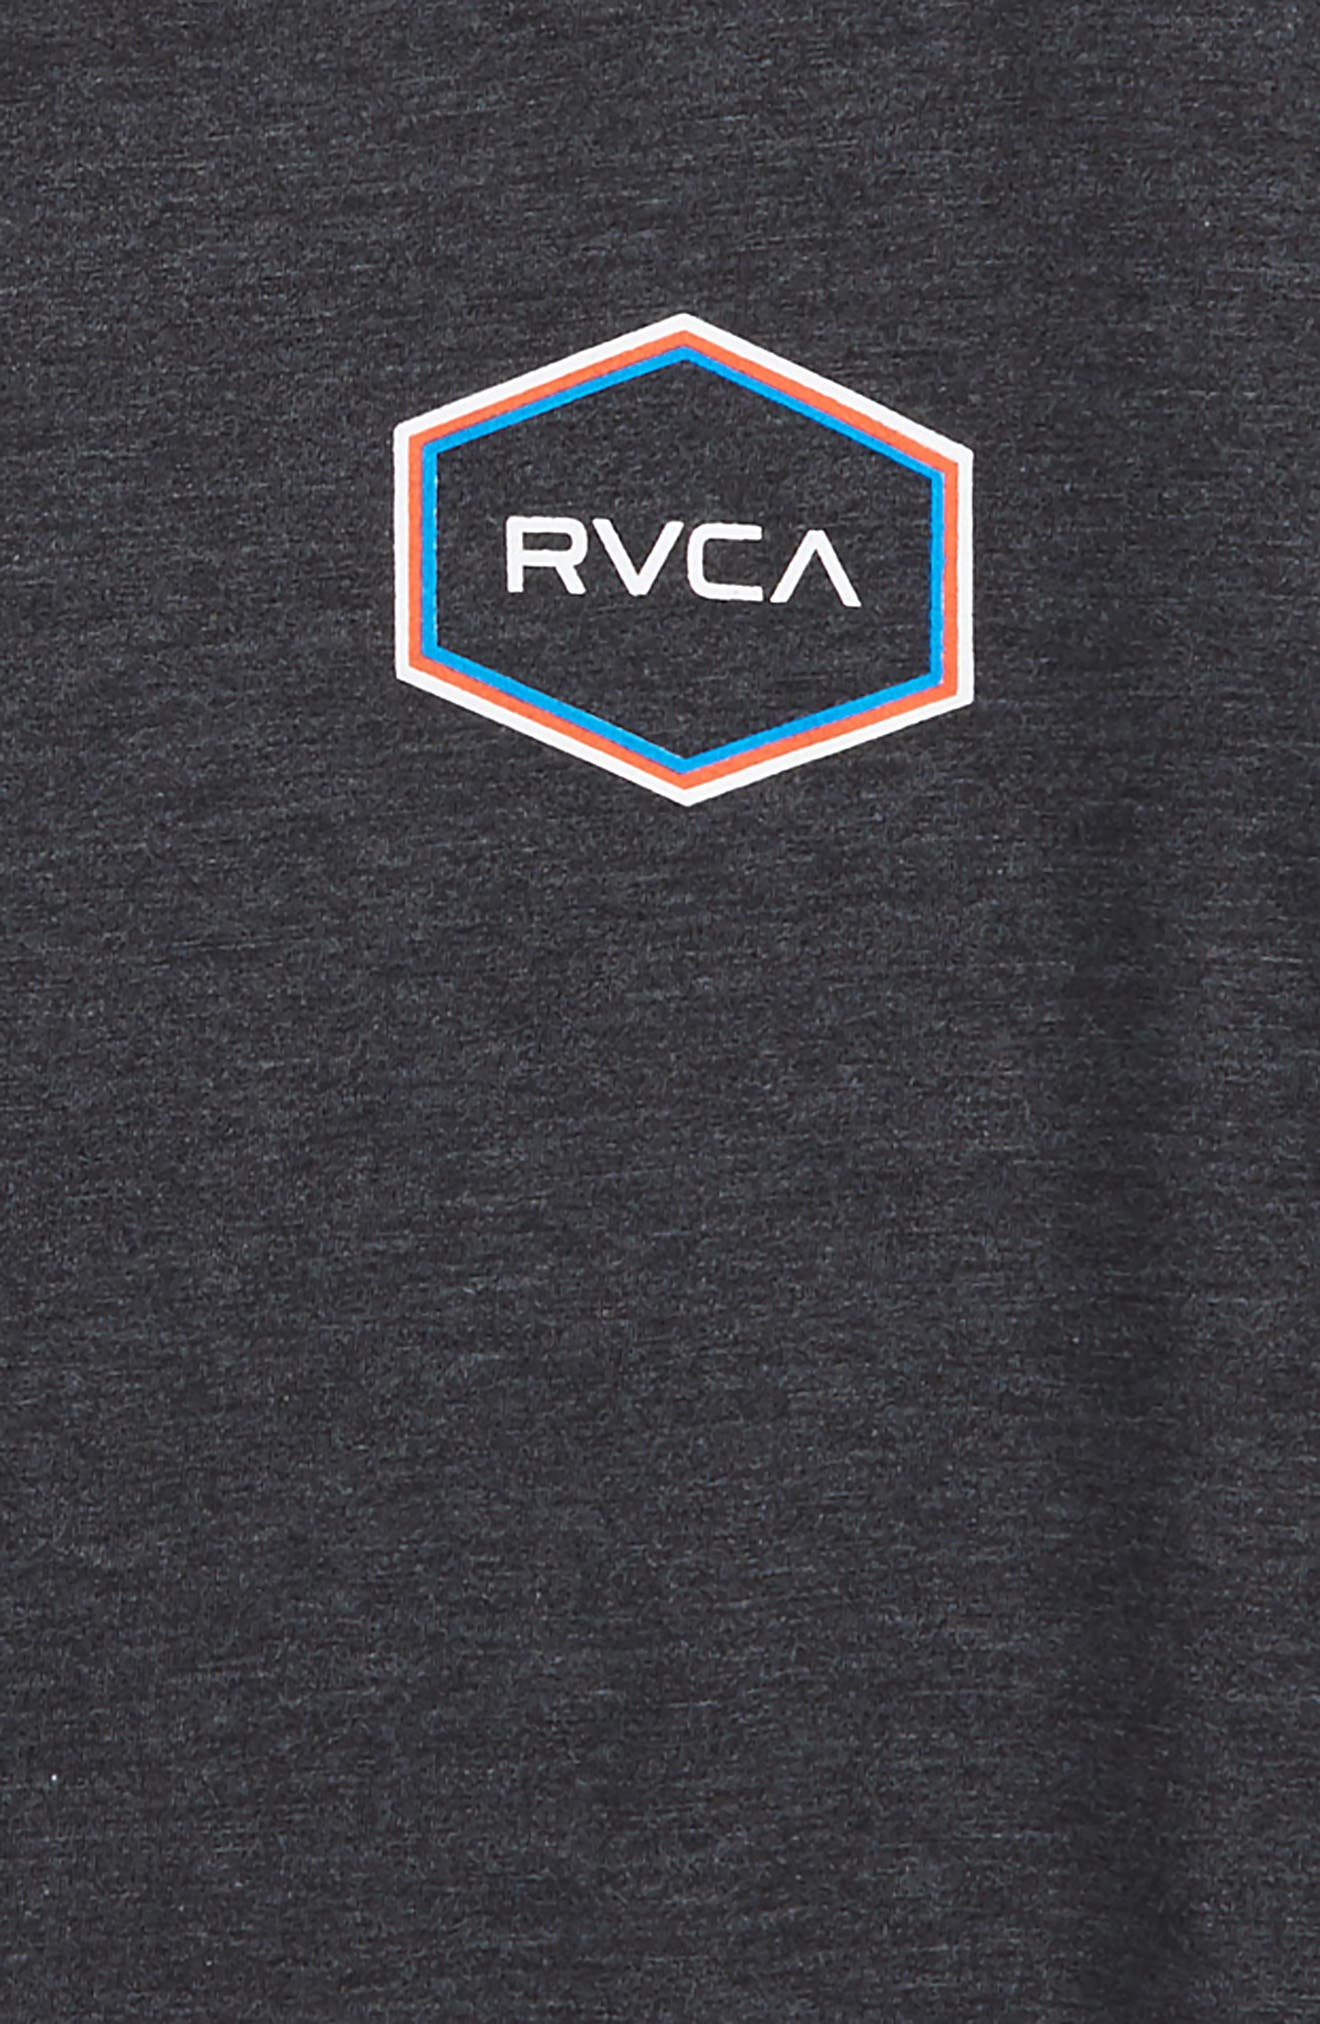 Alternate Image 2  - RVCA Triple Hex Logo Graphic T-Shirt (Big Boys)